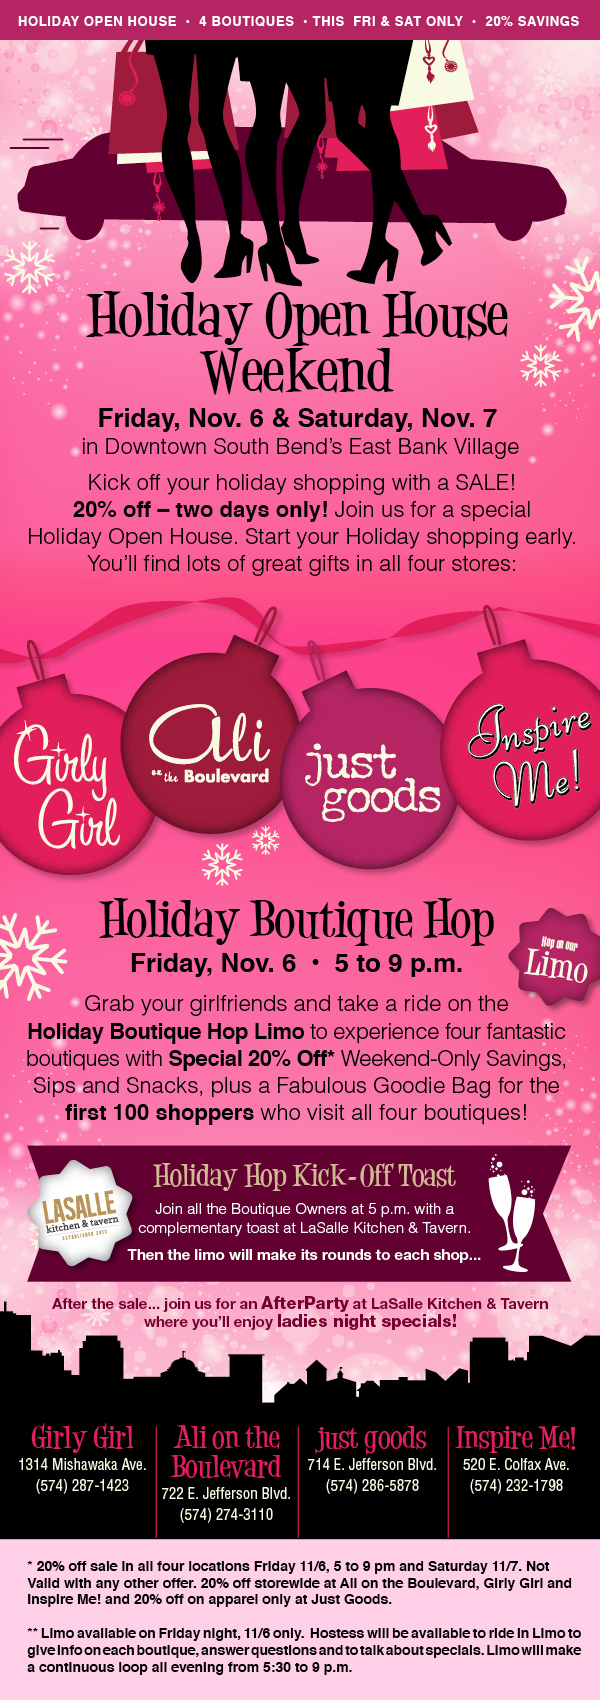 Holiday Boutique Hop 11-7-15_final CC.jpg